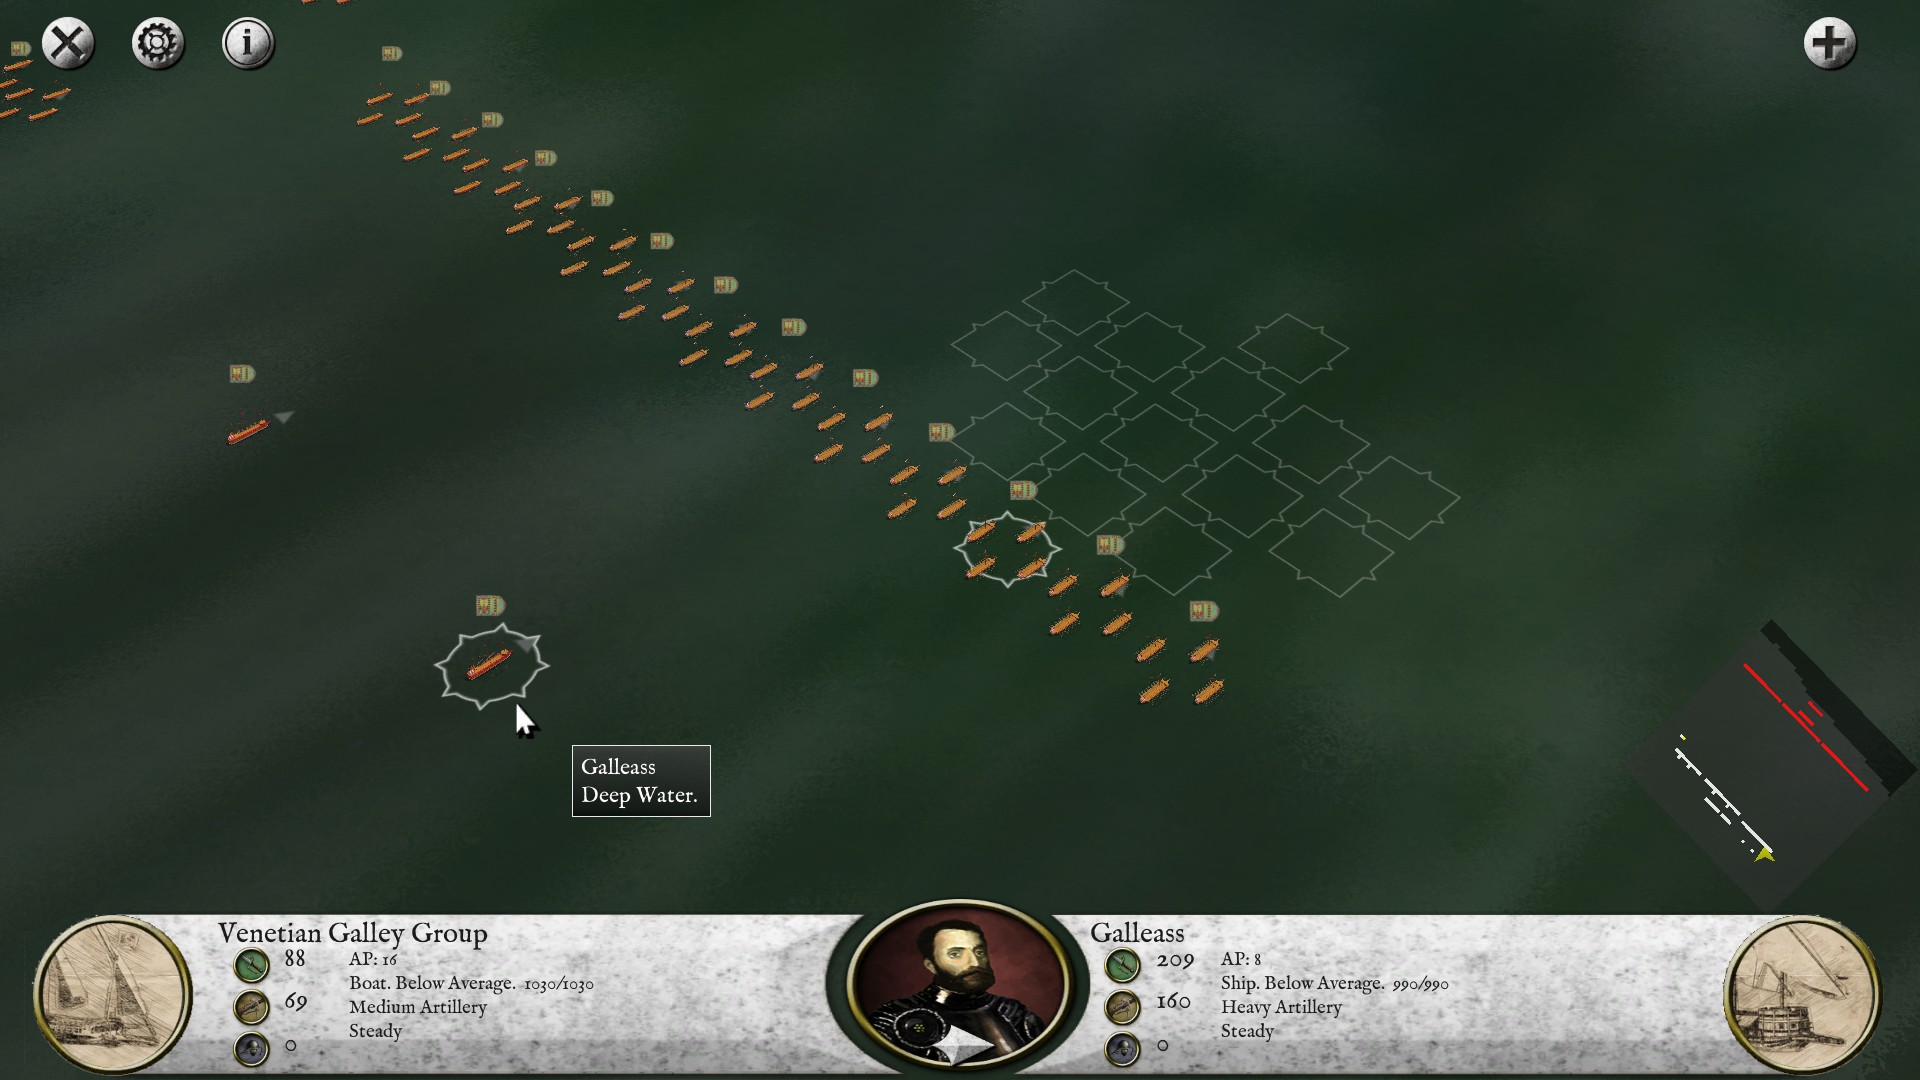 Matrix Games - Pike and Shot Battle of Lepanto Mod is Out!